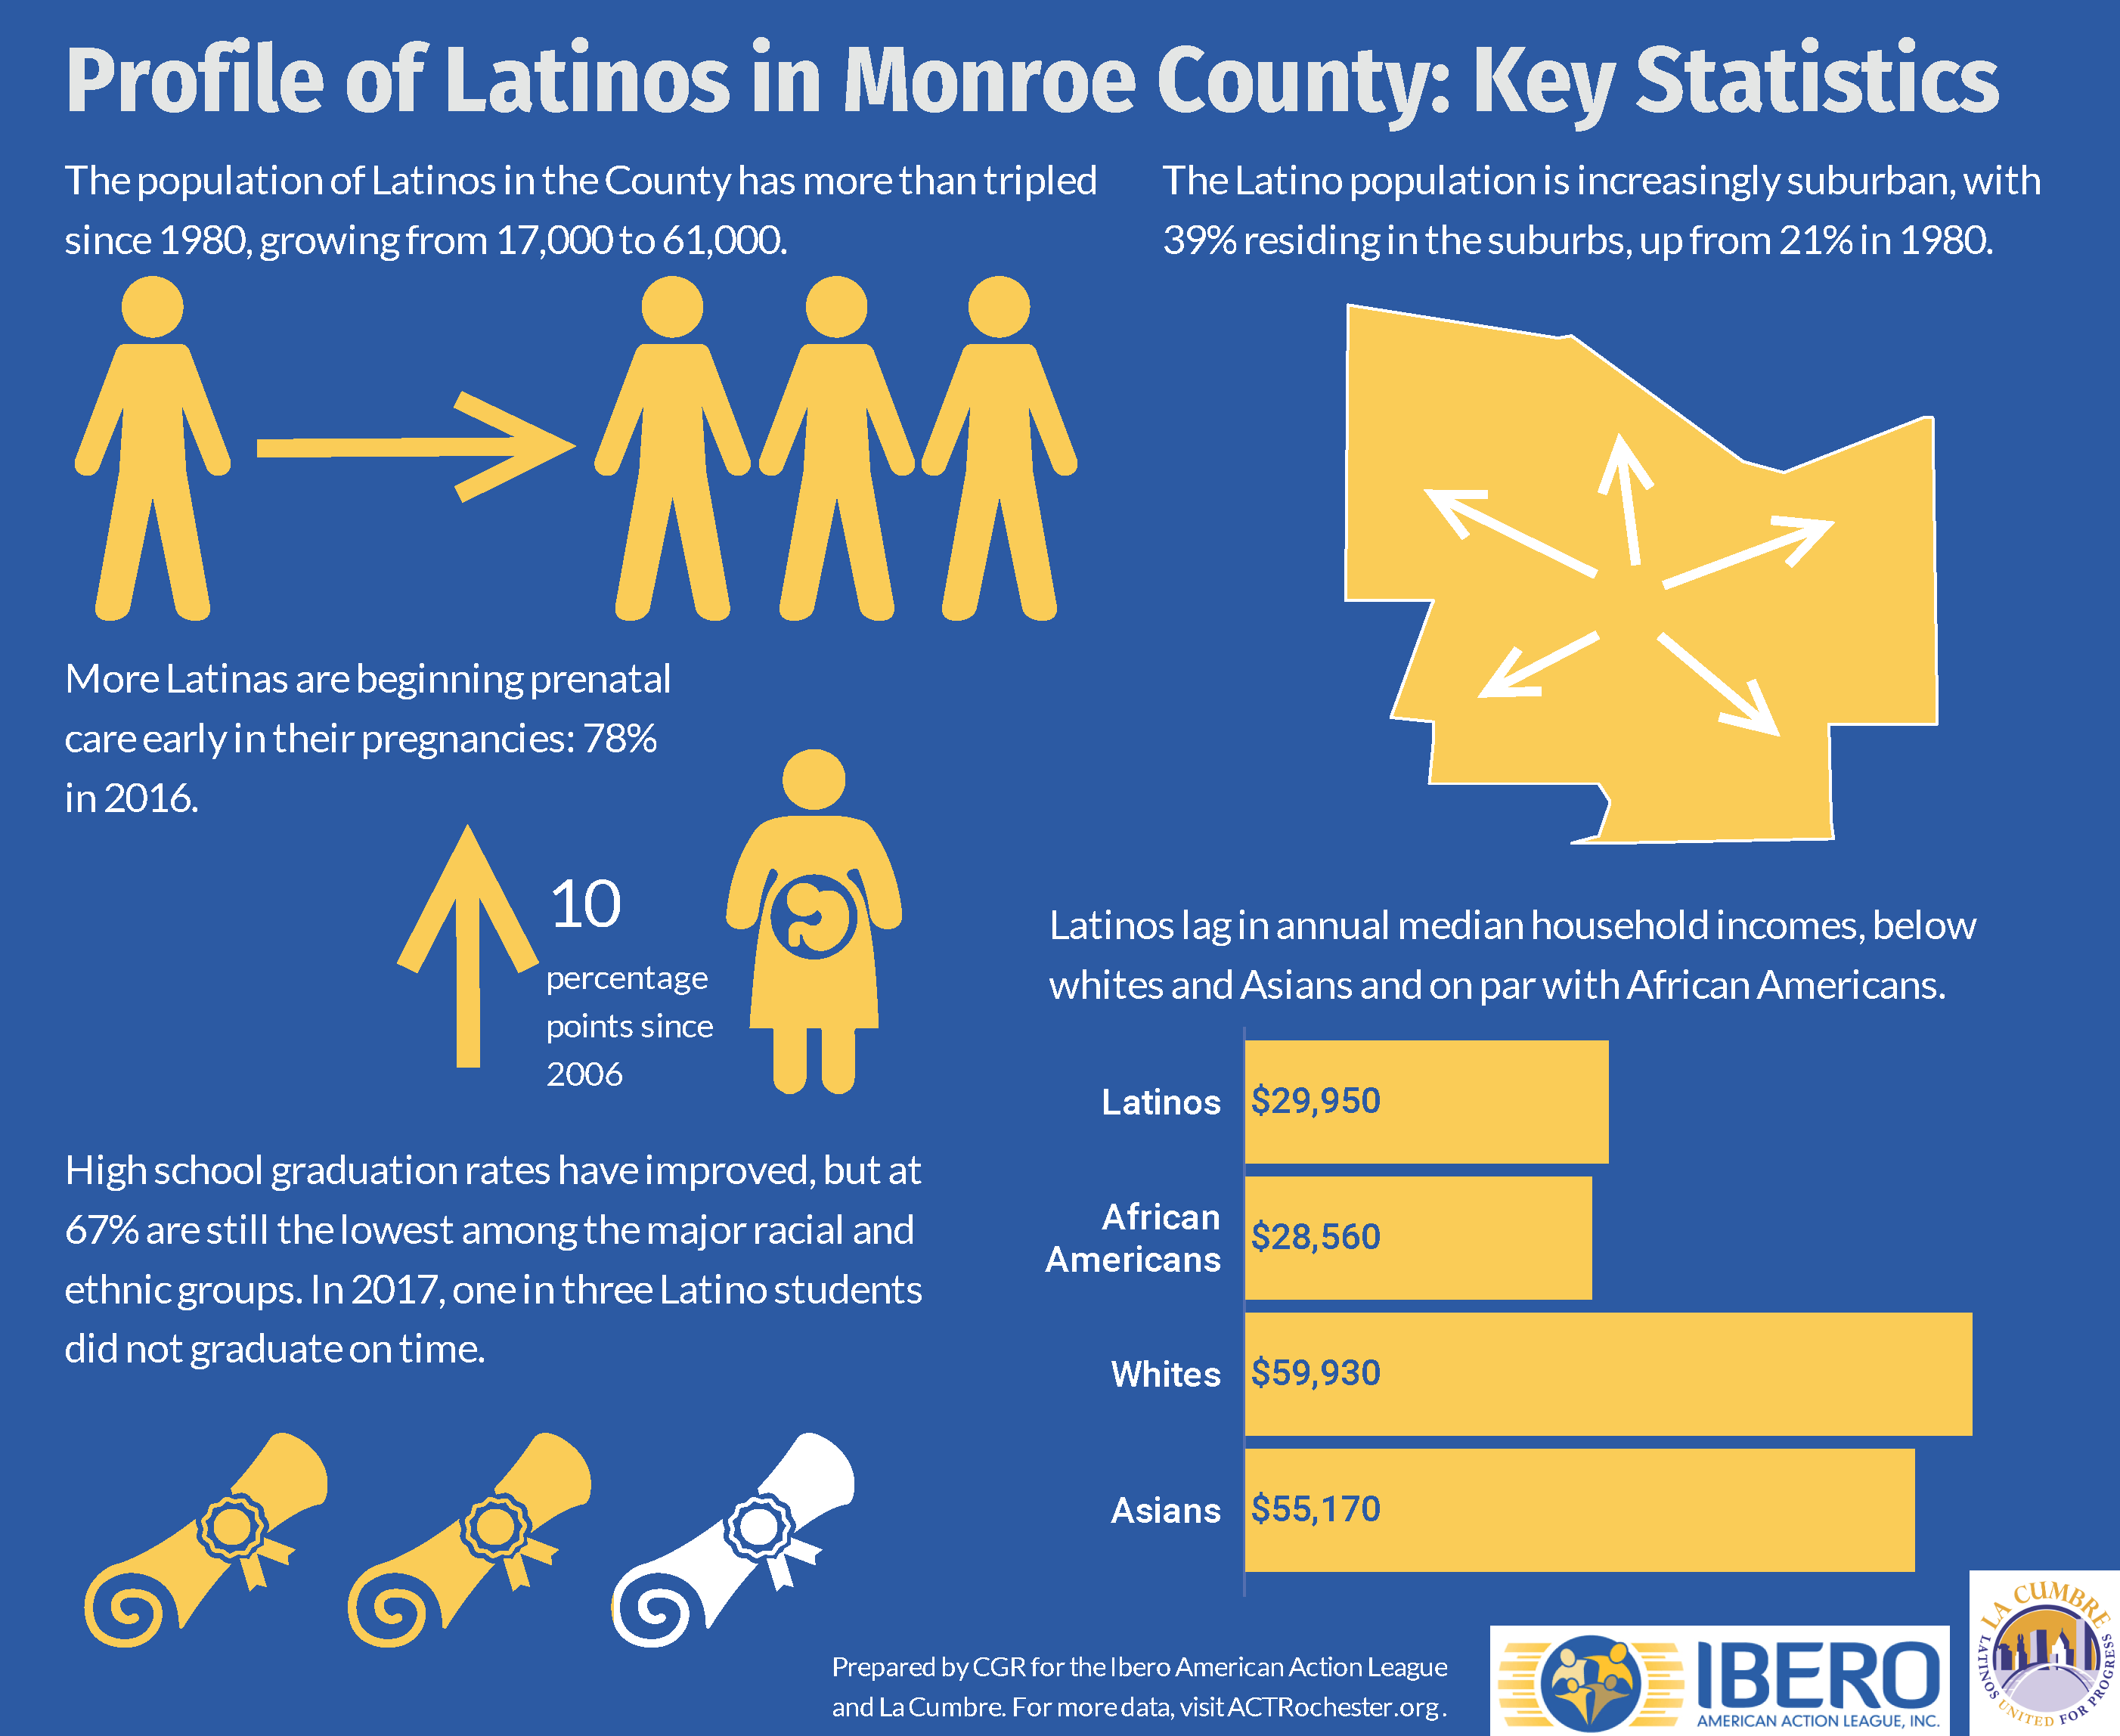 Latino Profile at a Glance